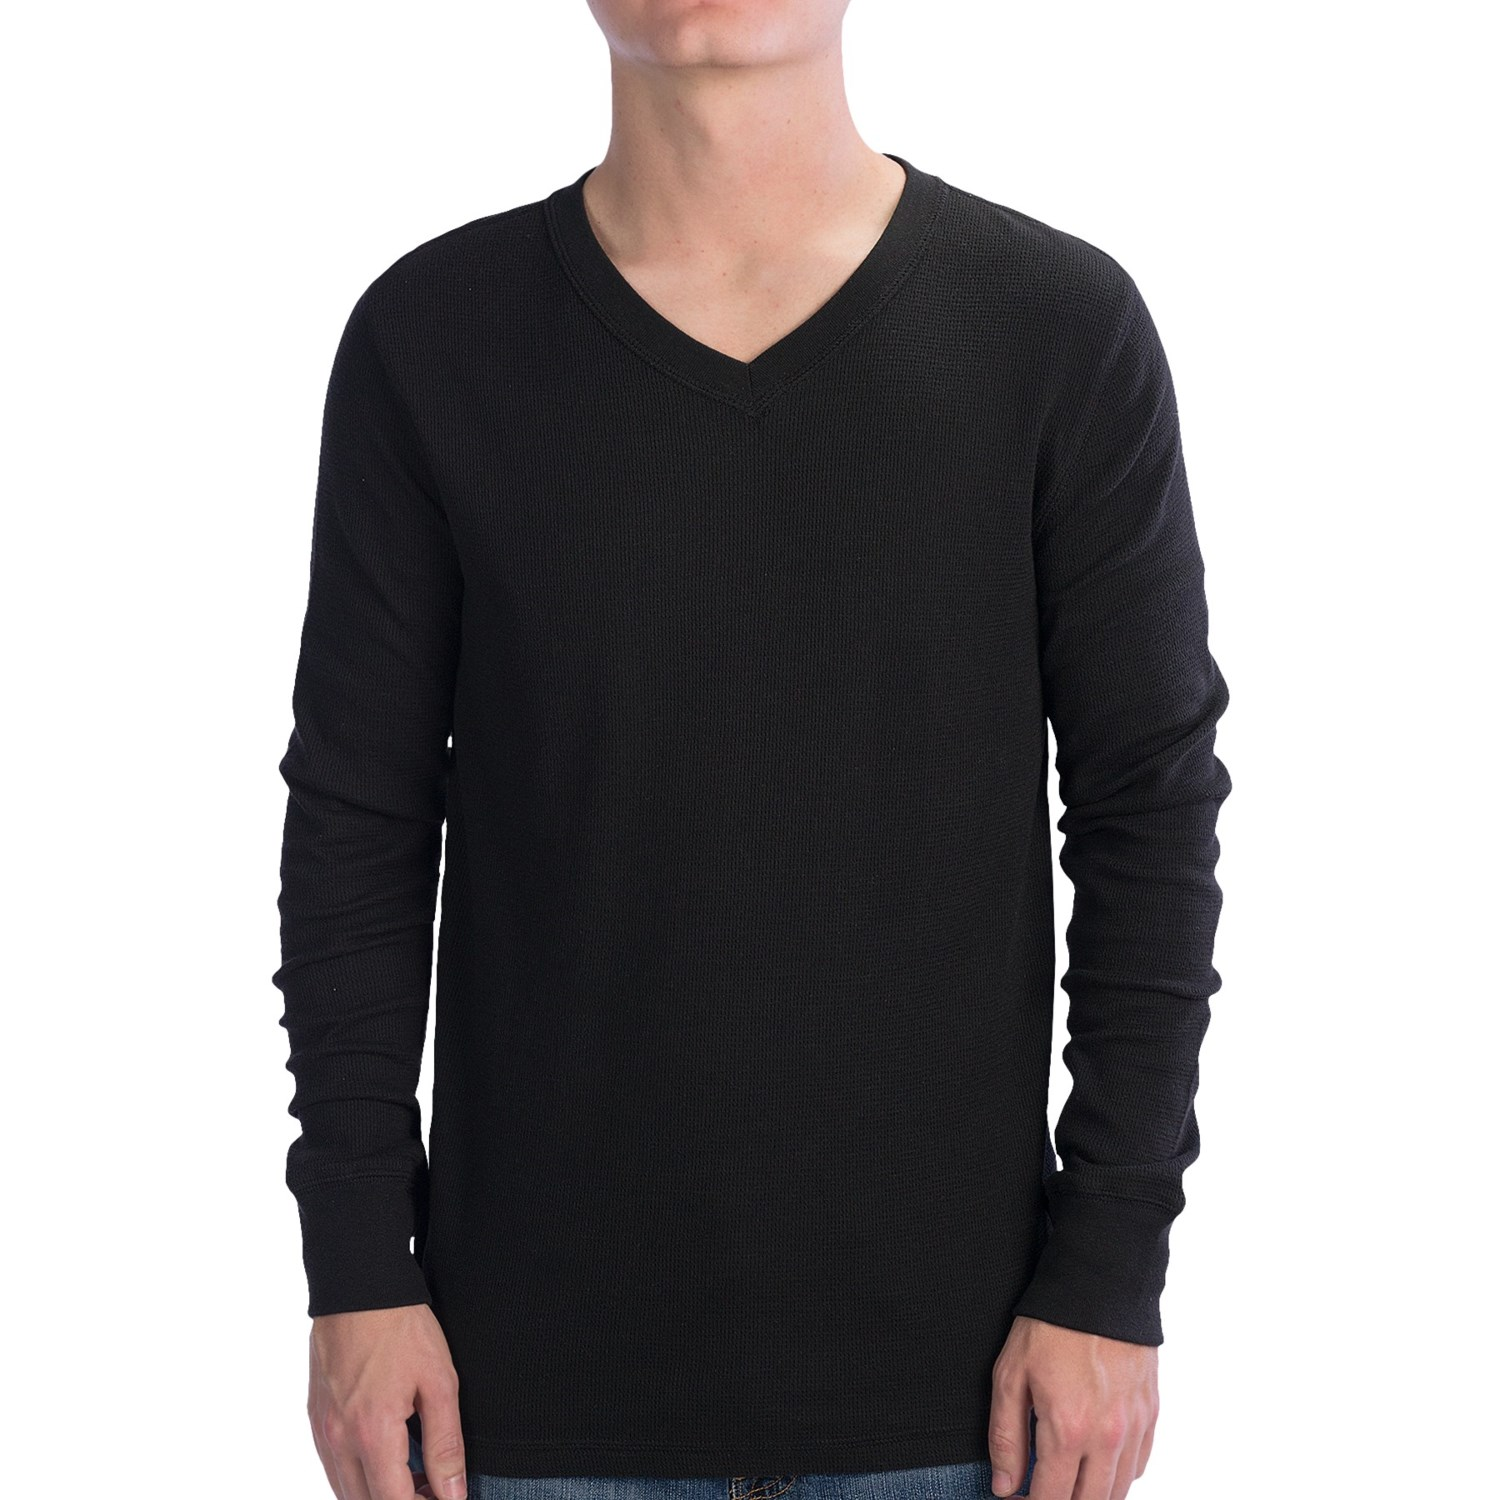 Levi's® Men's Graphic-Print Long Sleeved T-Shirt Calvin Klein Men's Long-Sleeve V-Neck Shirt $ Free ship at $ Enjoy Free Shipping at $49! See exclusions. Free ship at $ more like this. 4 colors. NEW! Under Armour Mens Threadborne 1/2 Zip.